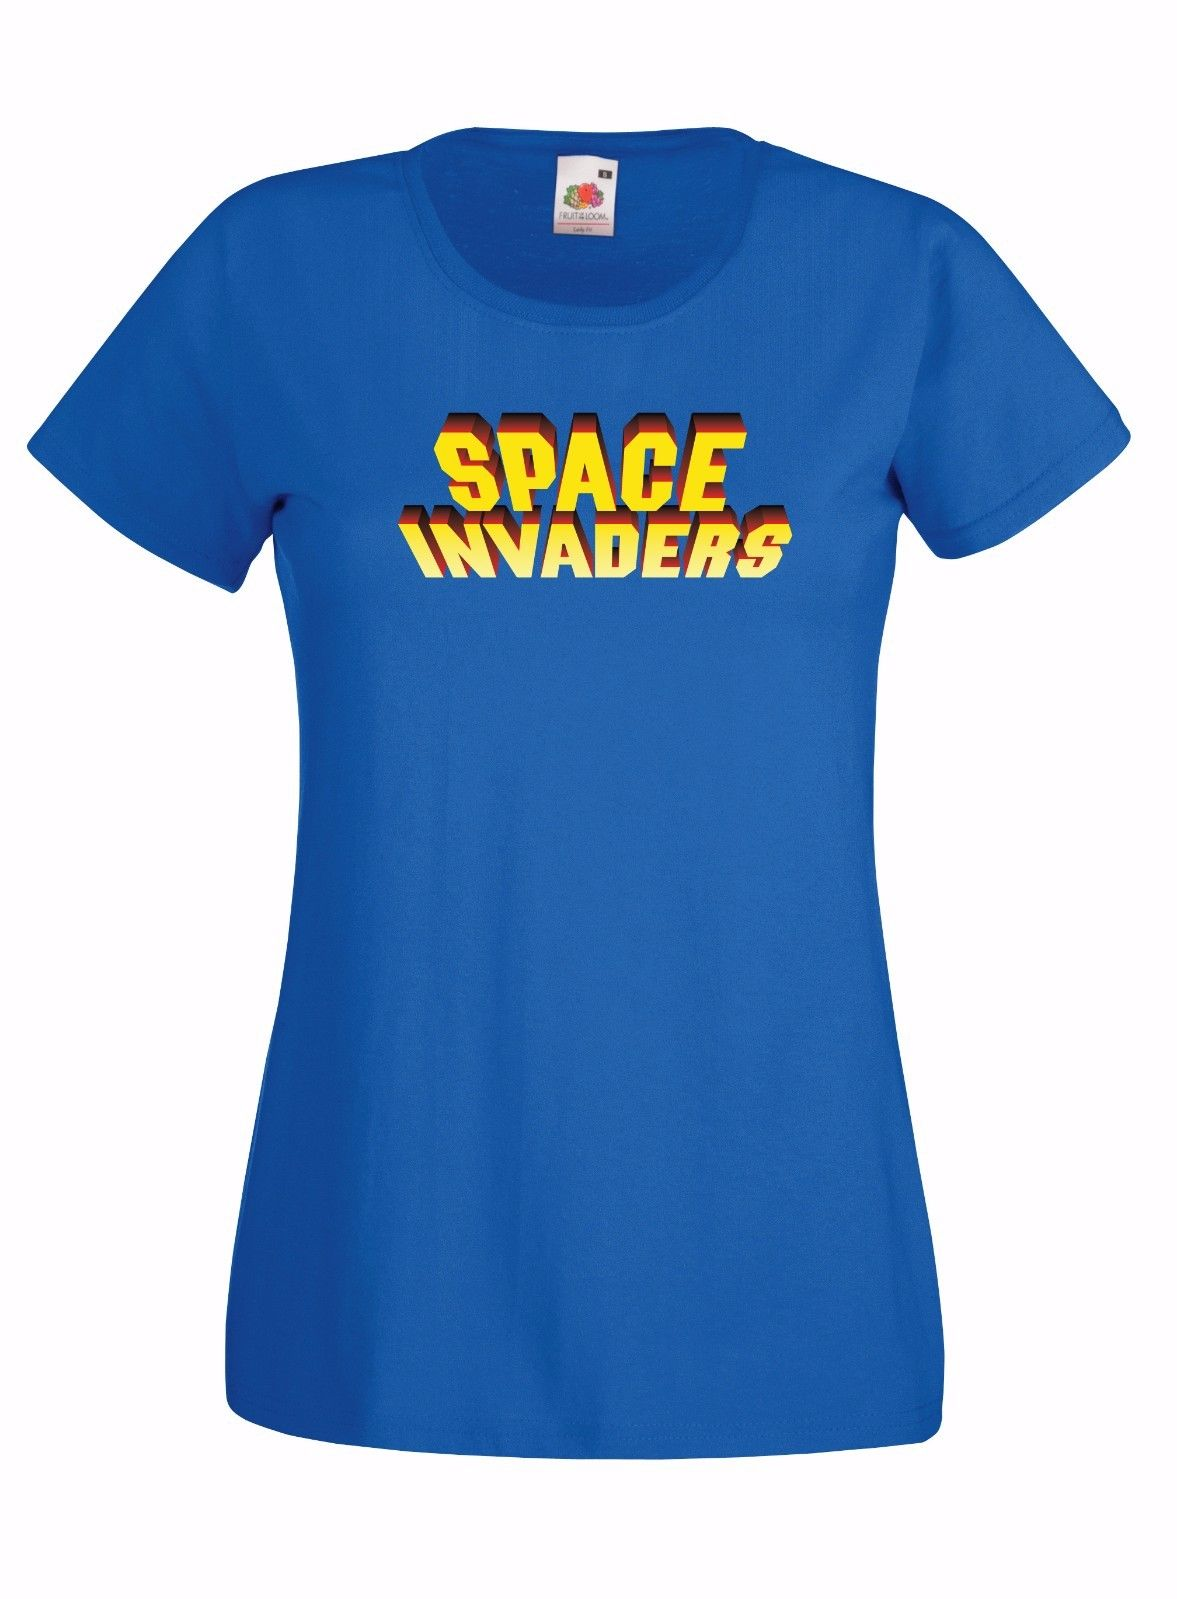 Space Invaders Inspired Logo Graphic Skinny High Quality 100 Cotton